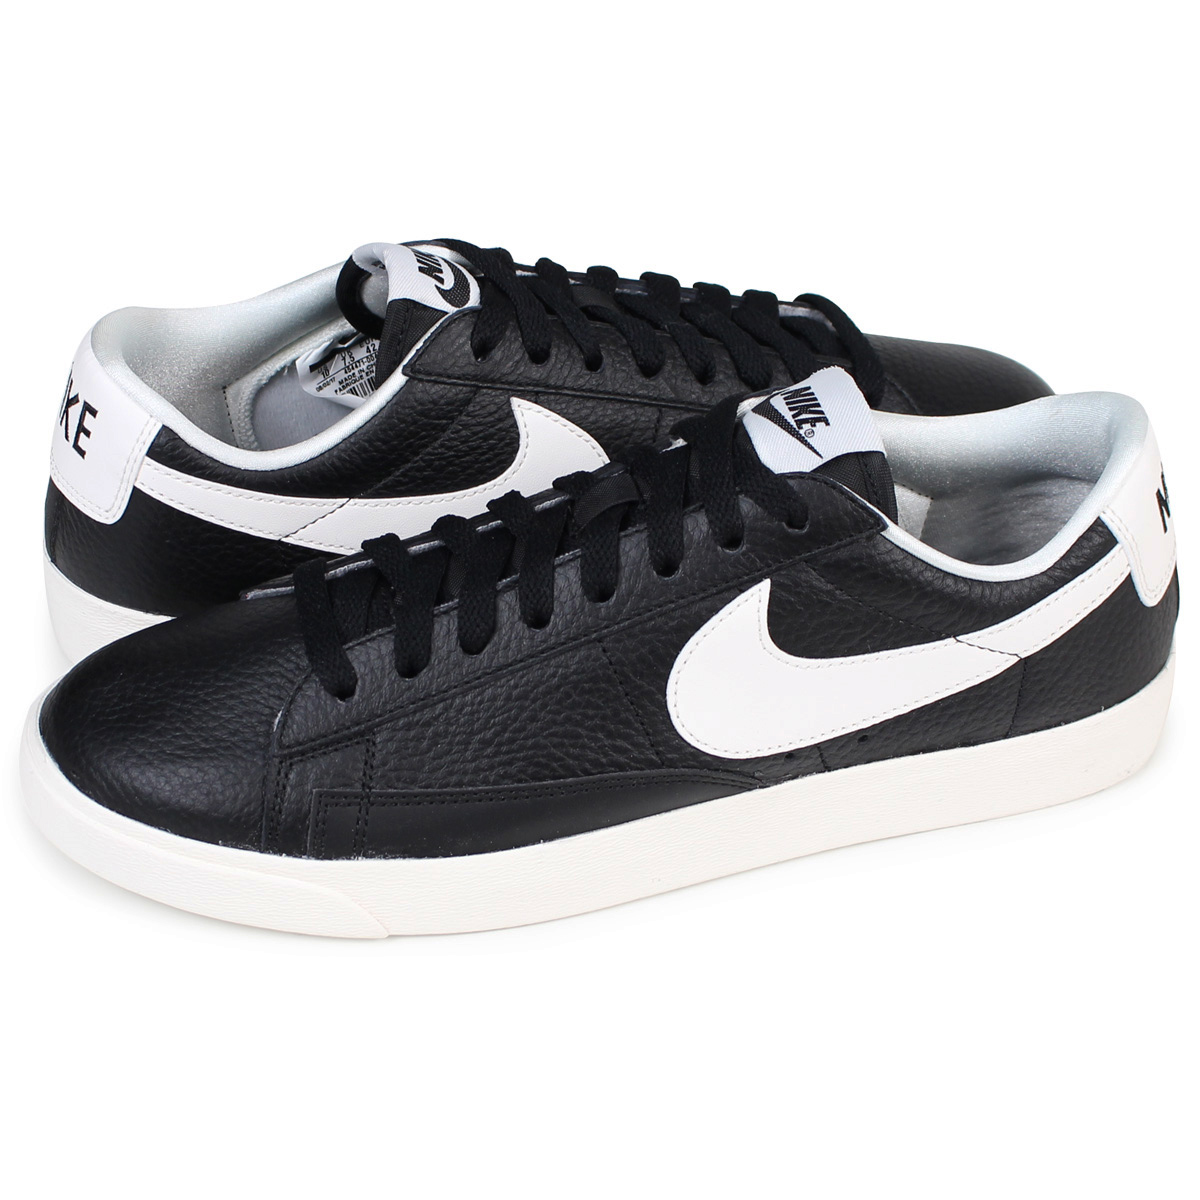 huge discount 88107 93136 NIKE WMNS BLAZER LOW PREMIUM Nike blazer Lady s sneakers 454,471-004 men s  shoes black  load planned Shinnyu load in reservation product 12 21  containing  ...